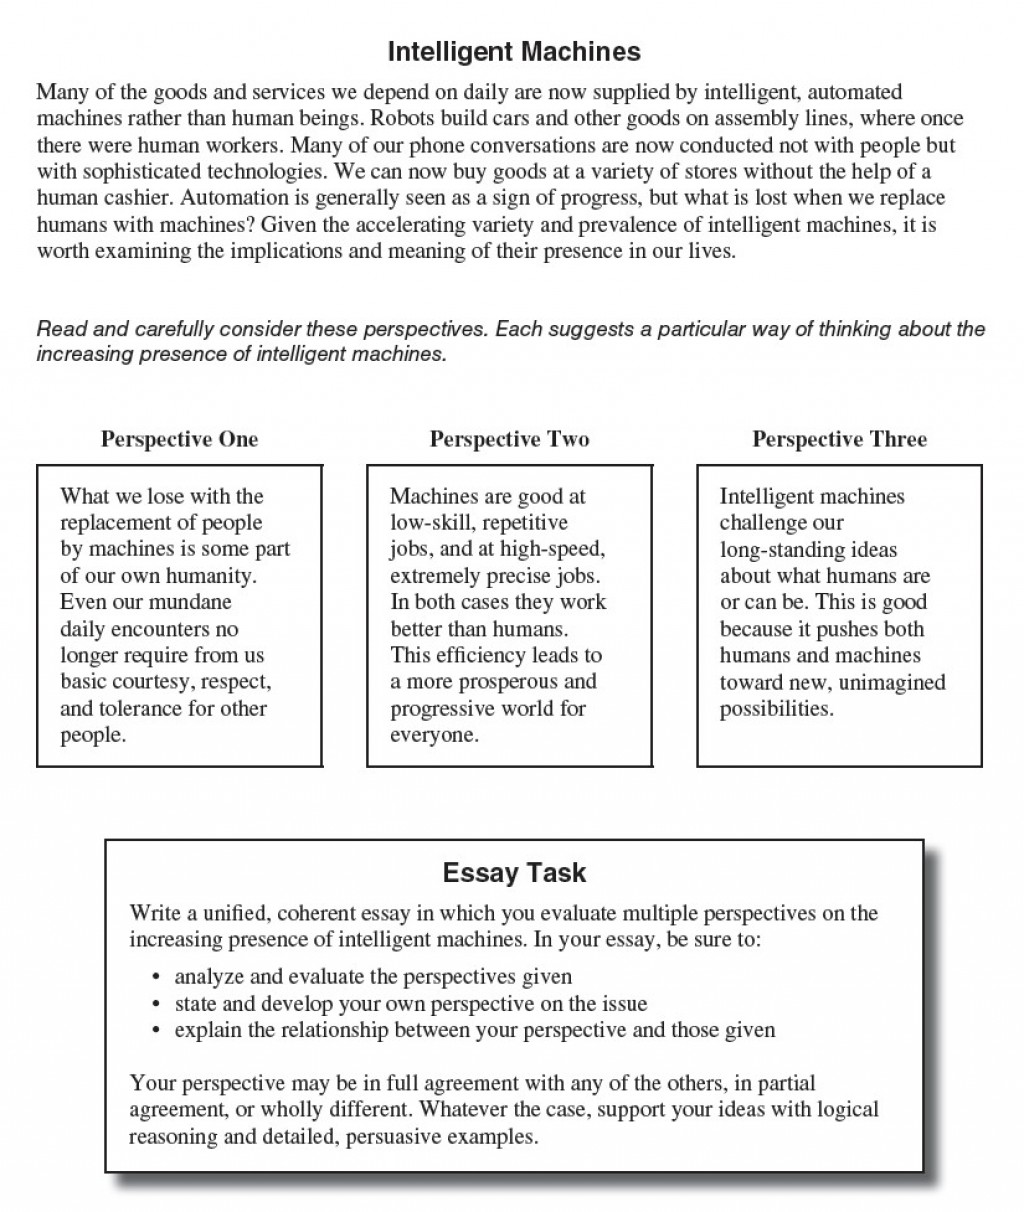 005 How To Write Act Essay Prompt Wonderful And Scene Number In A New Killer Pdf Large